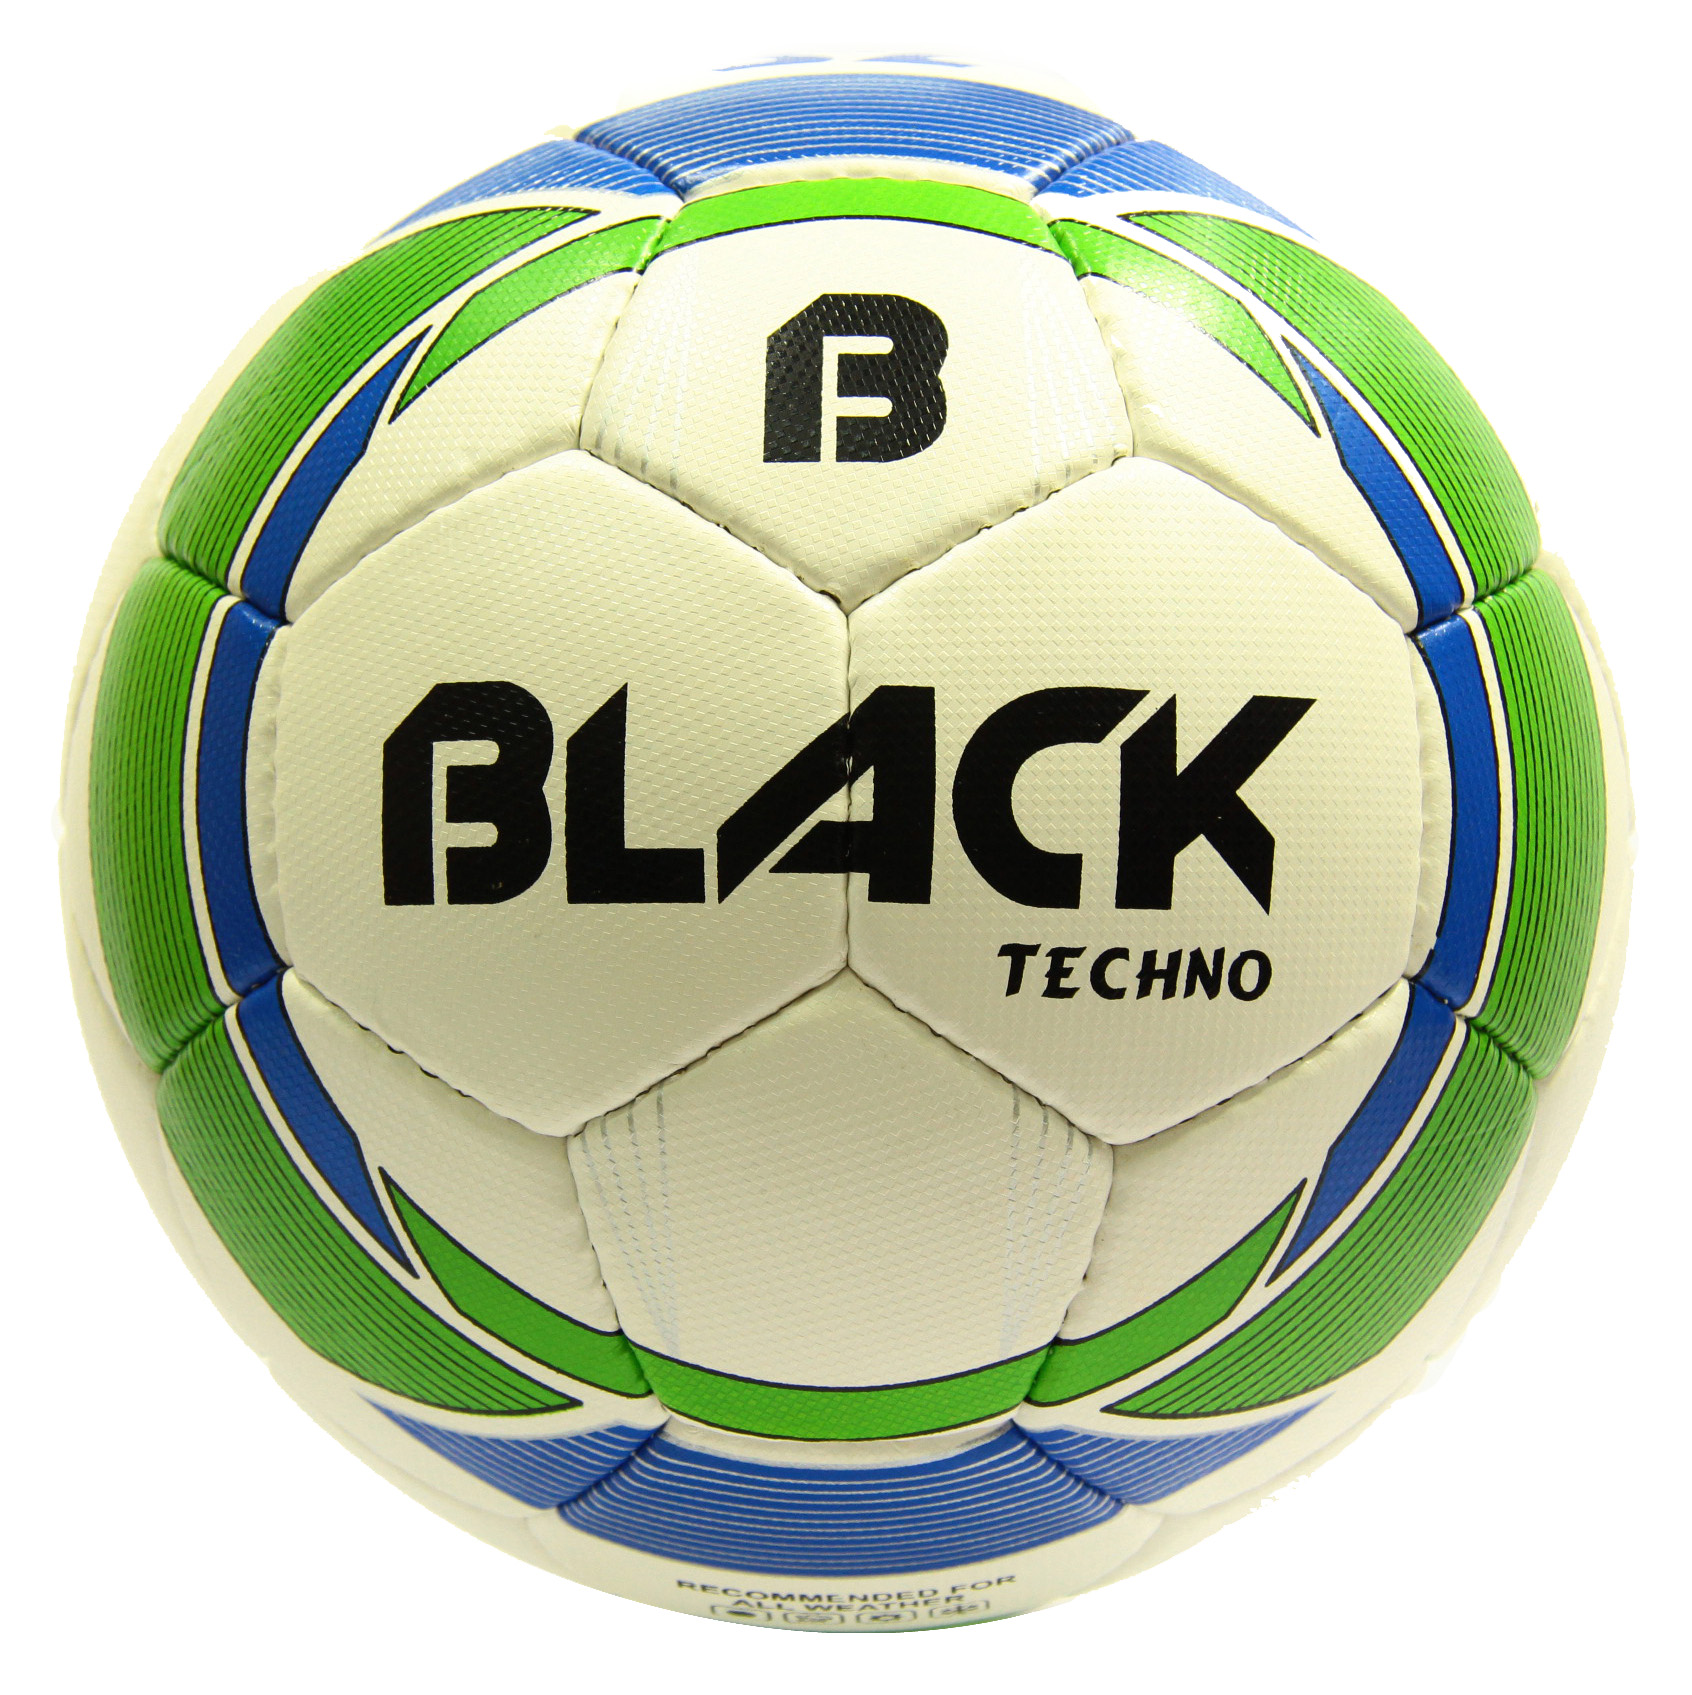 Black Techno Futbol Topu No 5